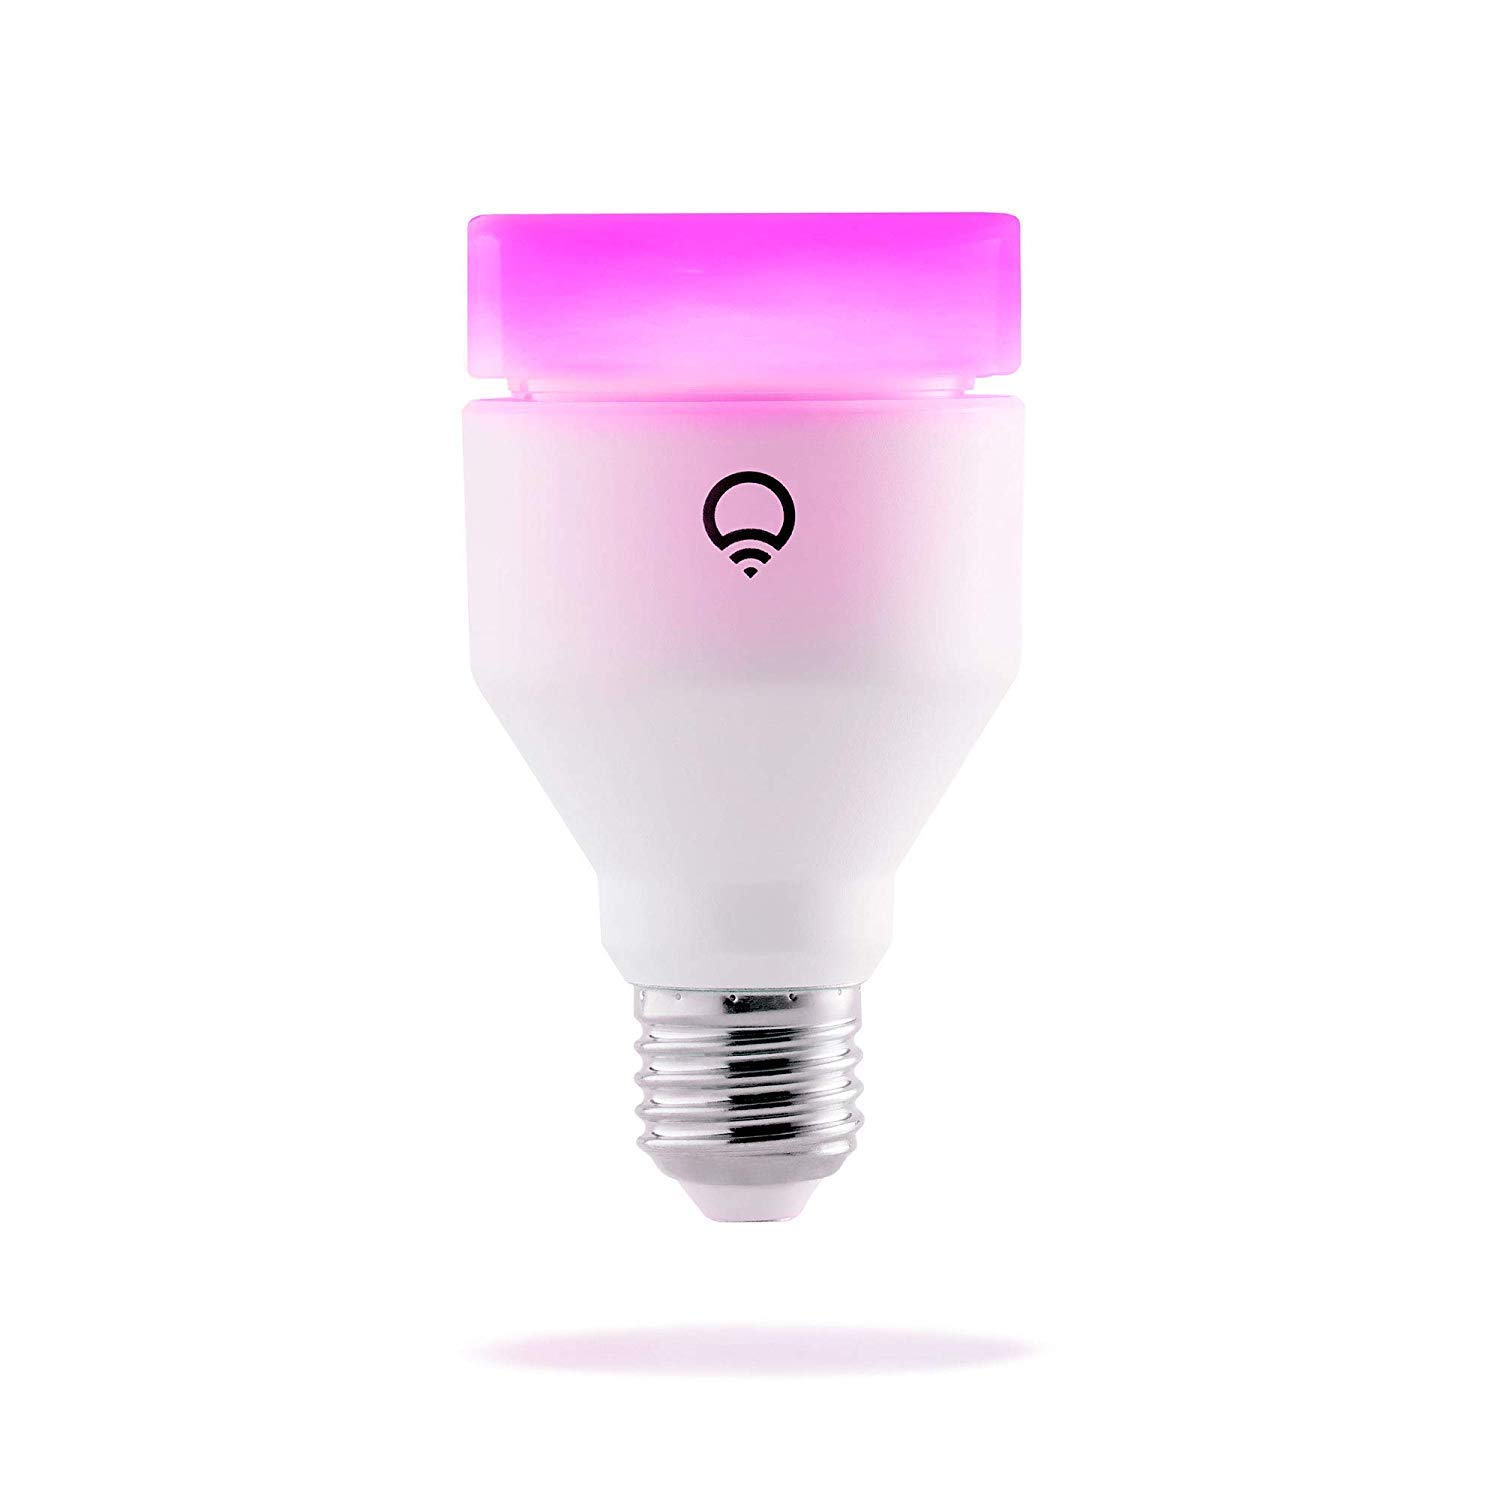 LIFX A19 Wi-Fi Smart LED Light Bulb, Multicolor (Renewed)